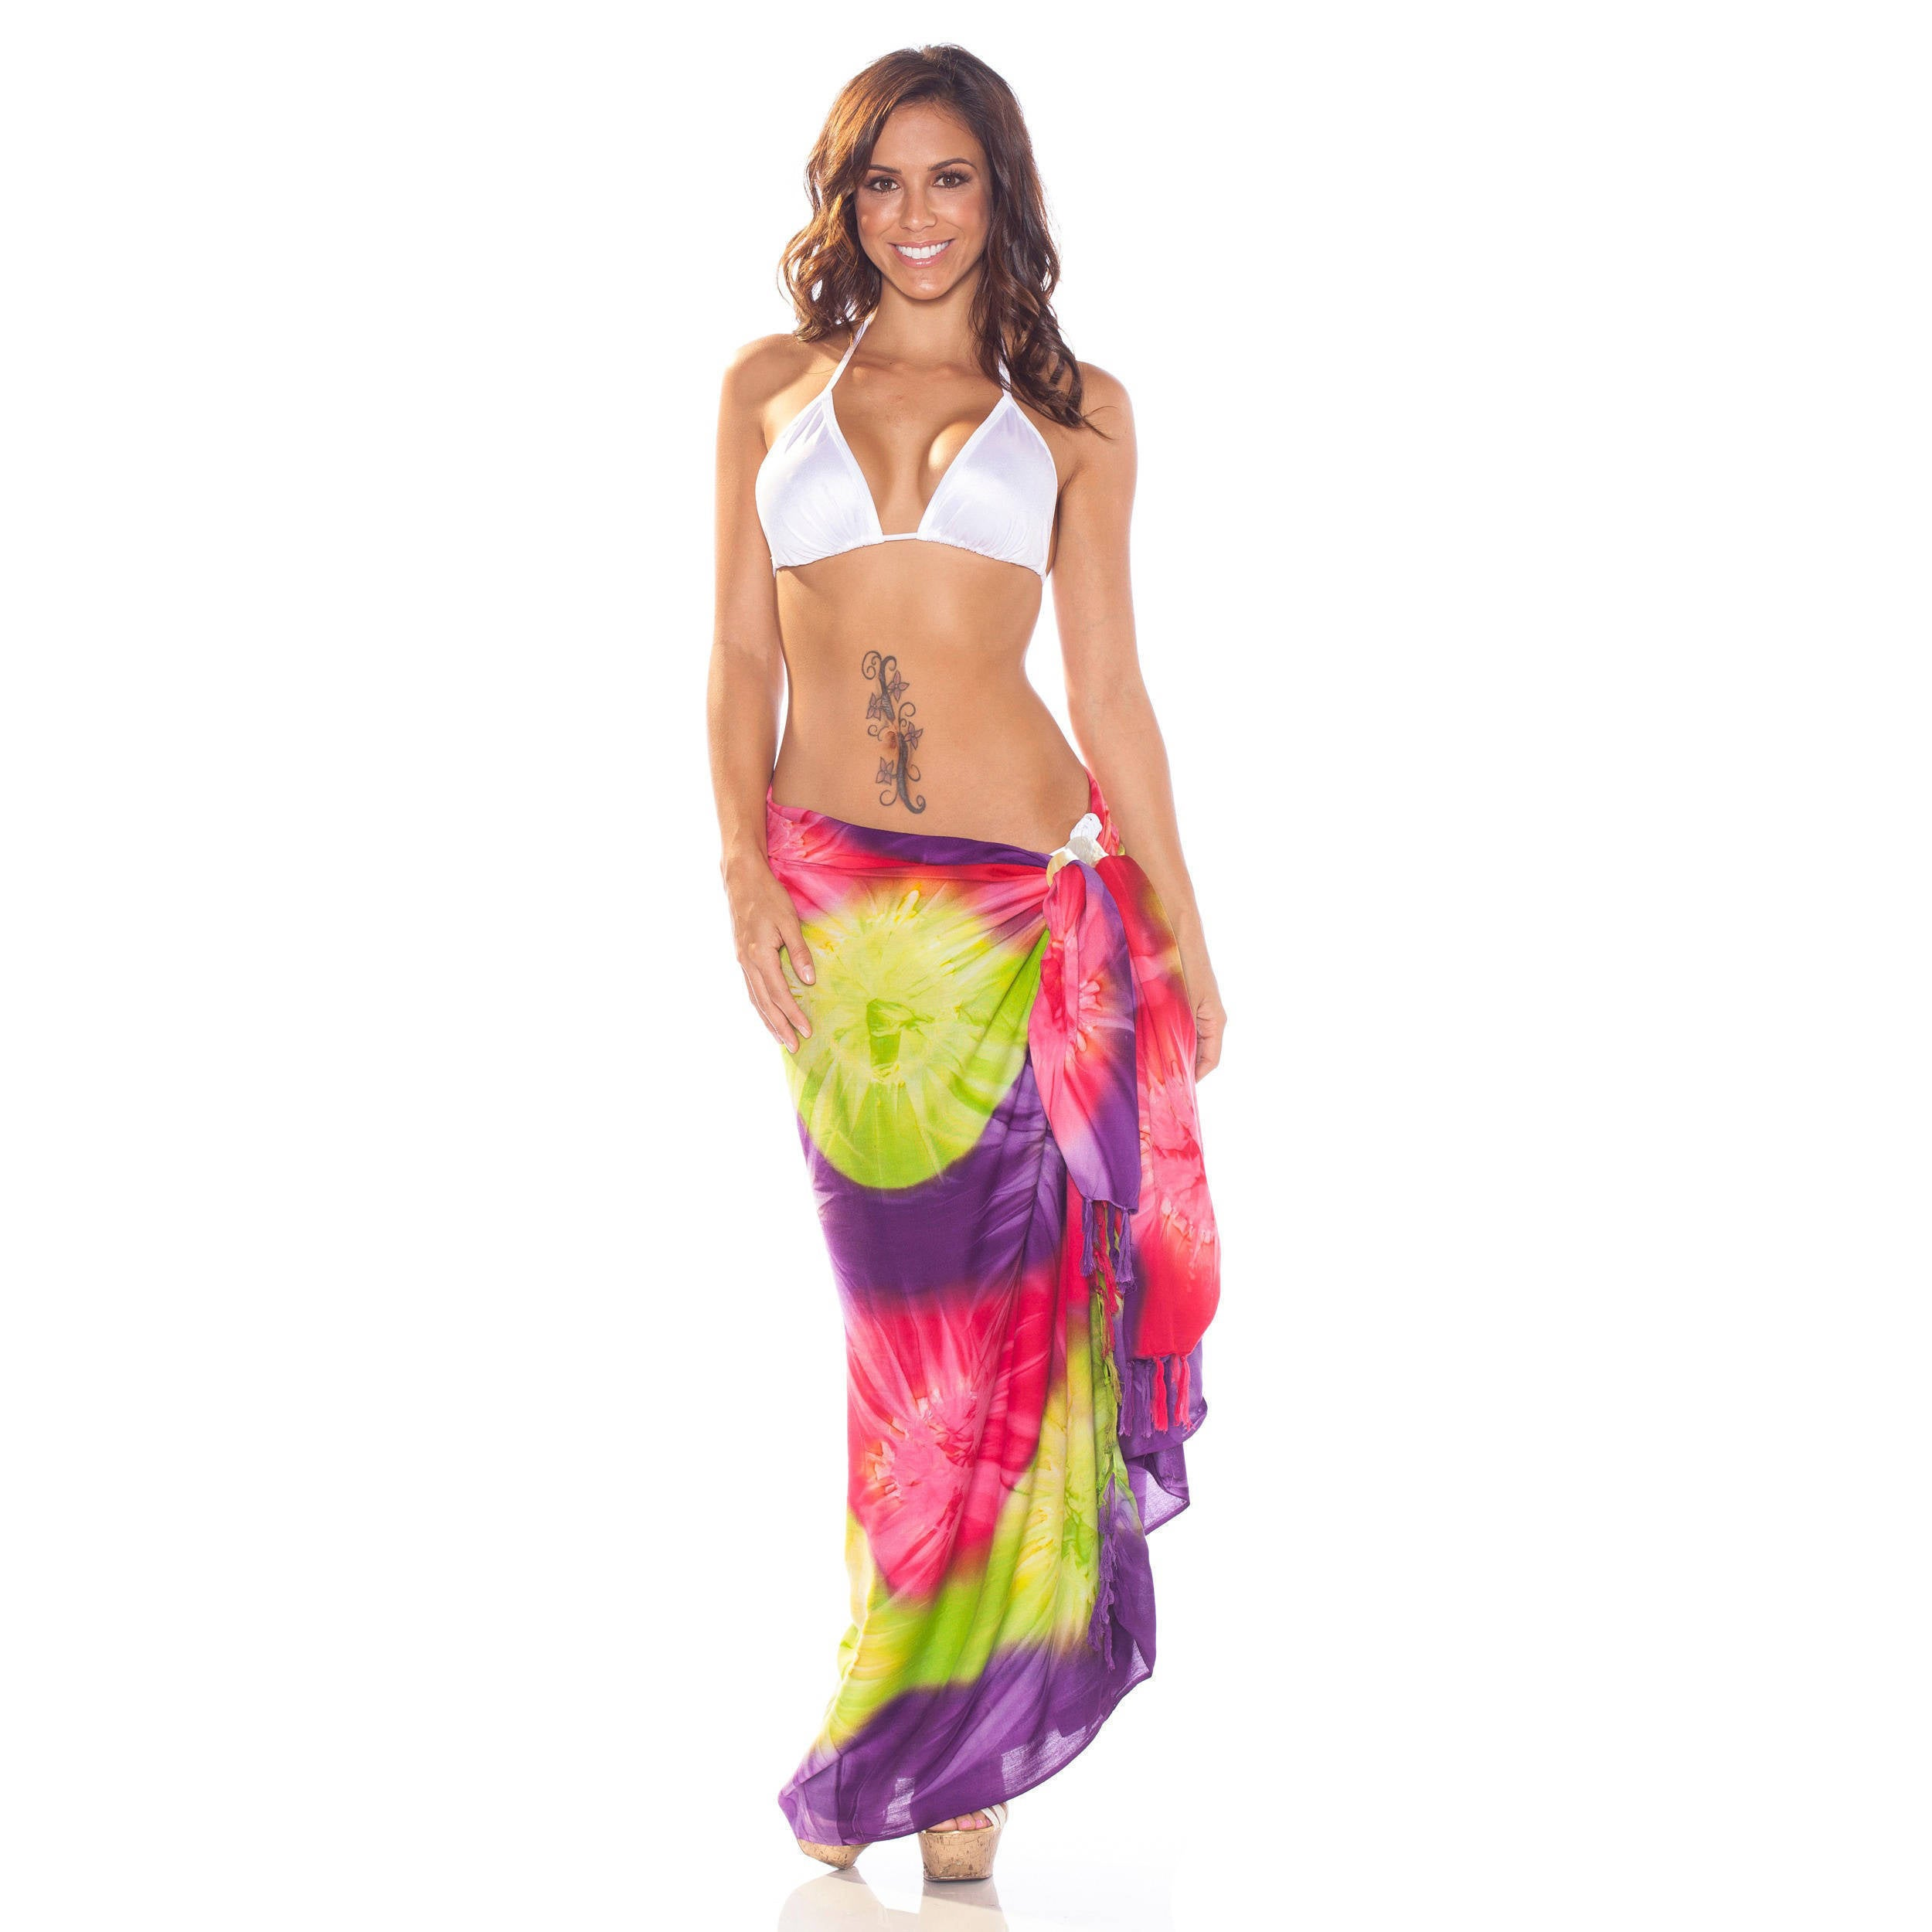 058d0fdac497a Shop Handmade 1 World Sarongs Women s Tie-dye Jungle Sarong (Indonesia) -  Free Shipping On Orders Over  45 - Overstock - 4141642